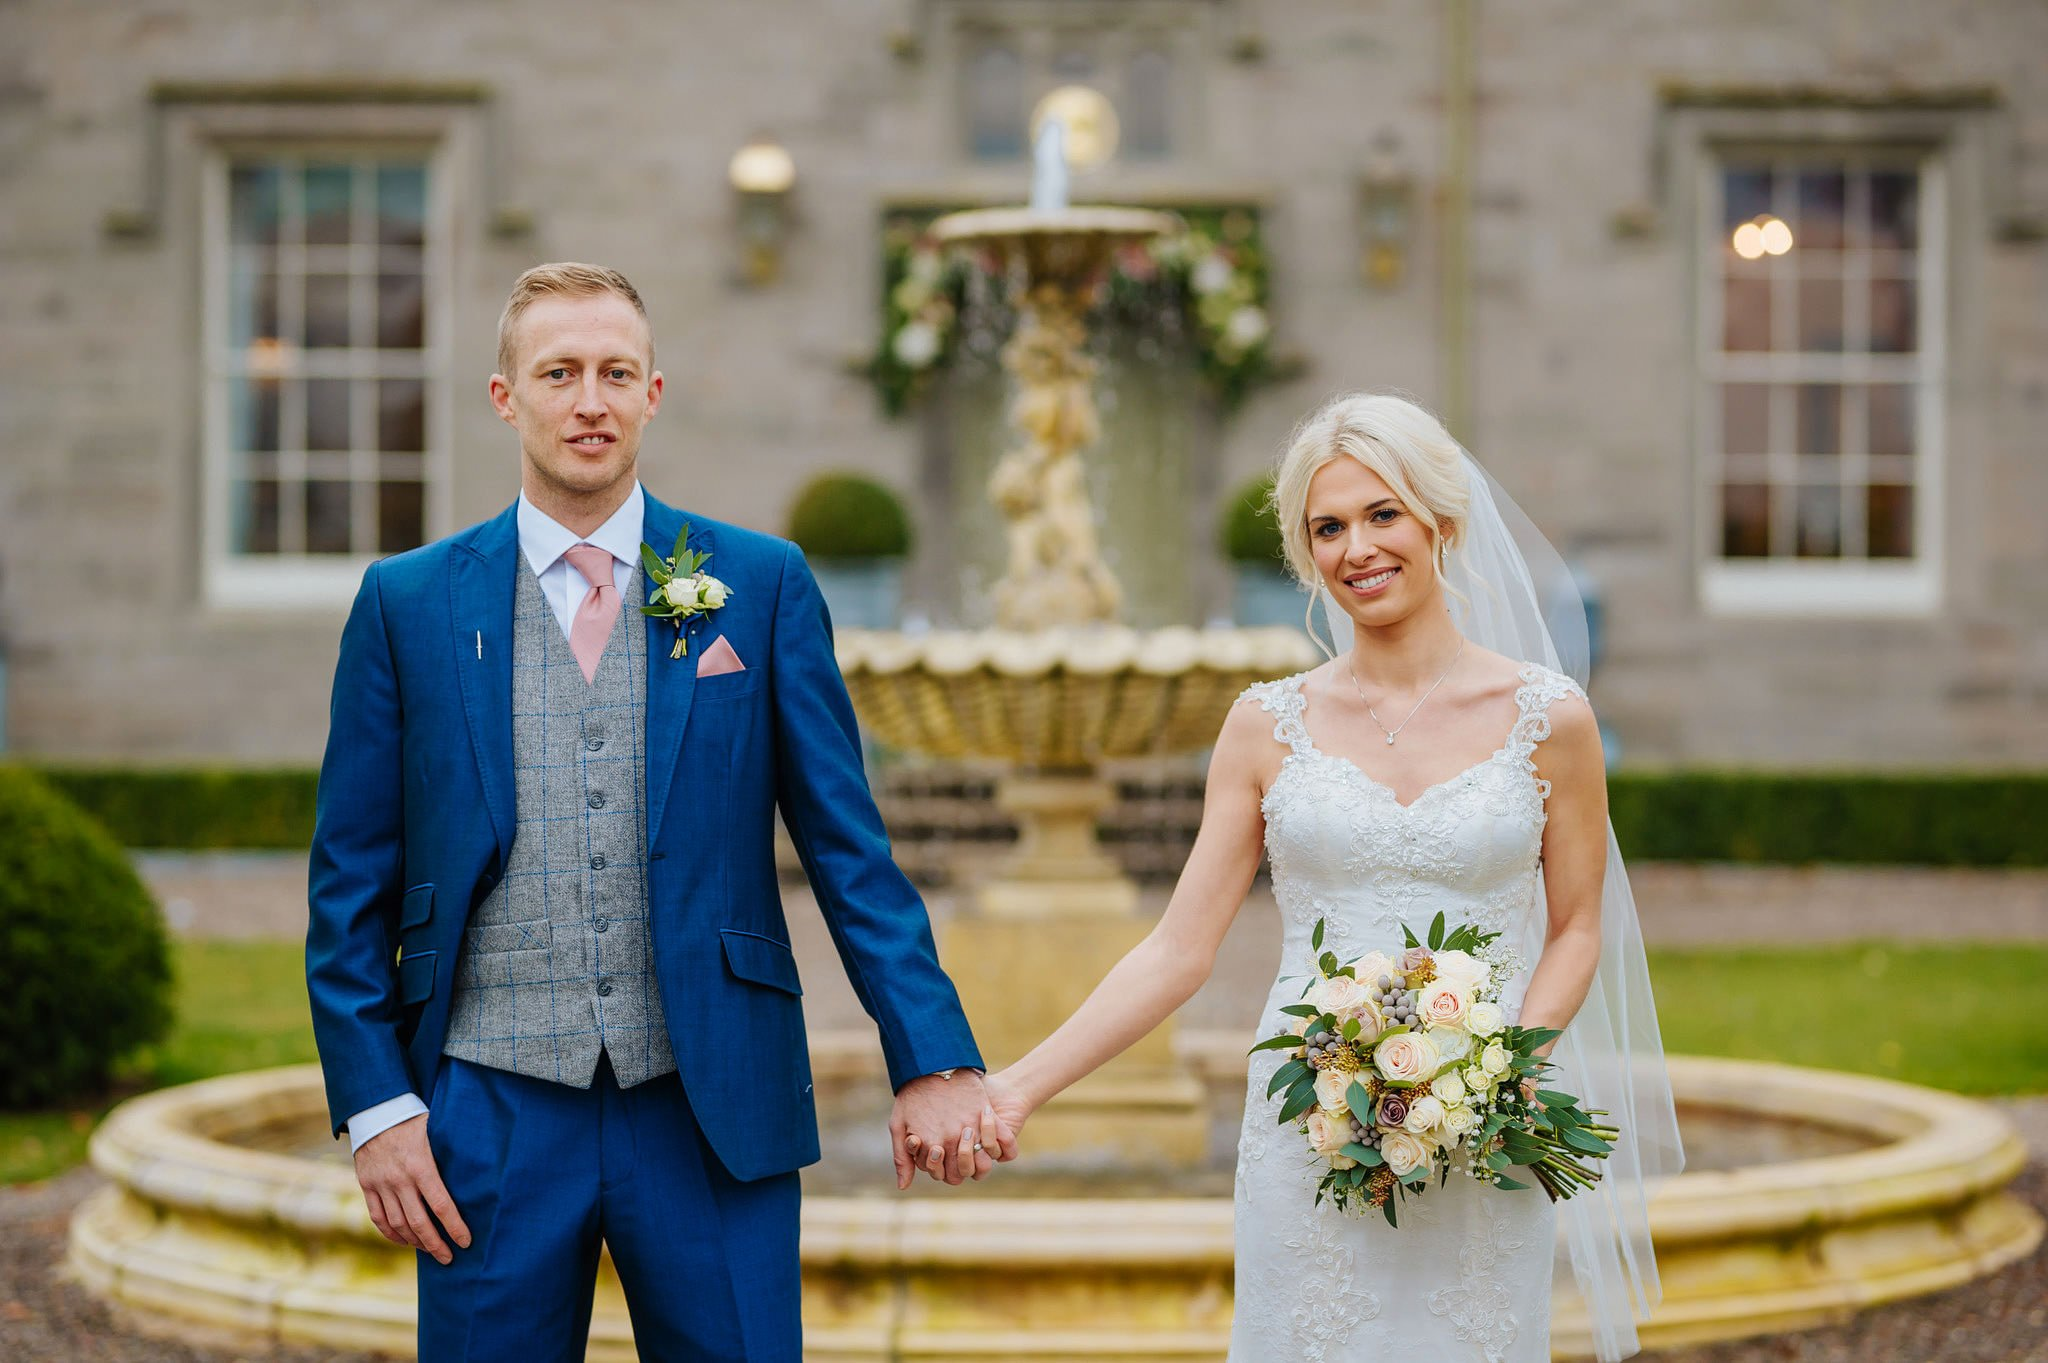 Sigma 85mm F1.4 ART review vs Wedding Photography 23